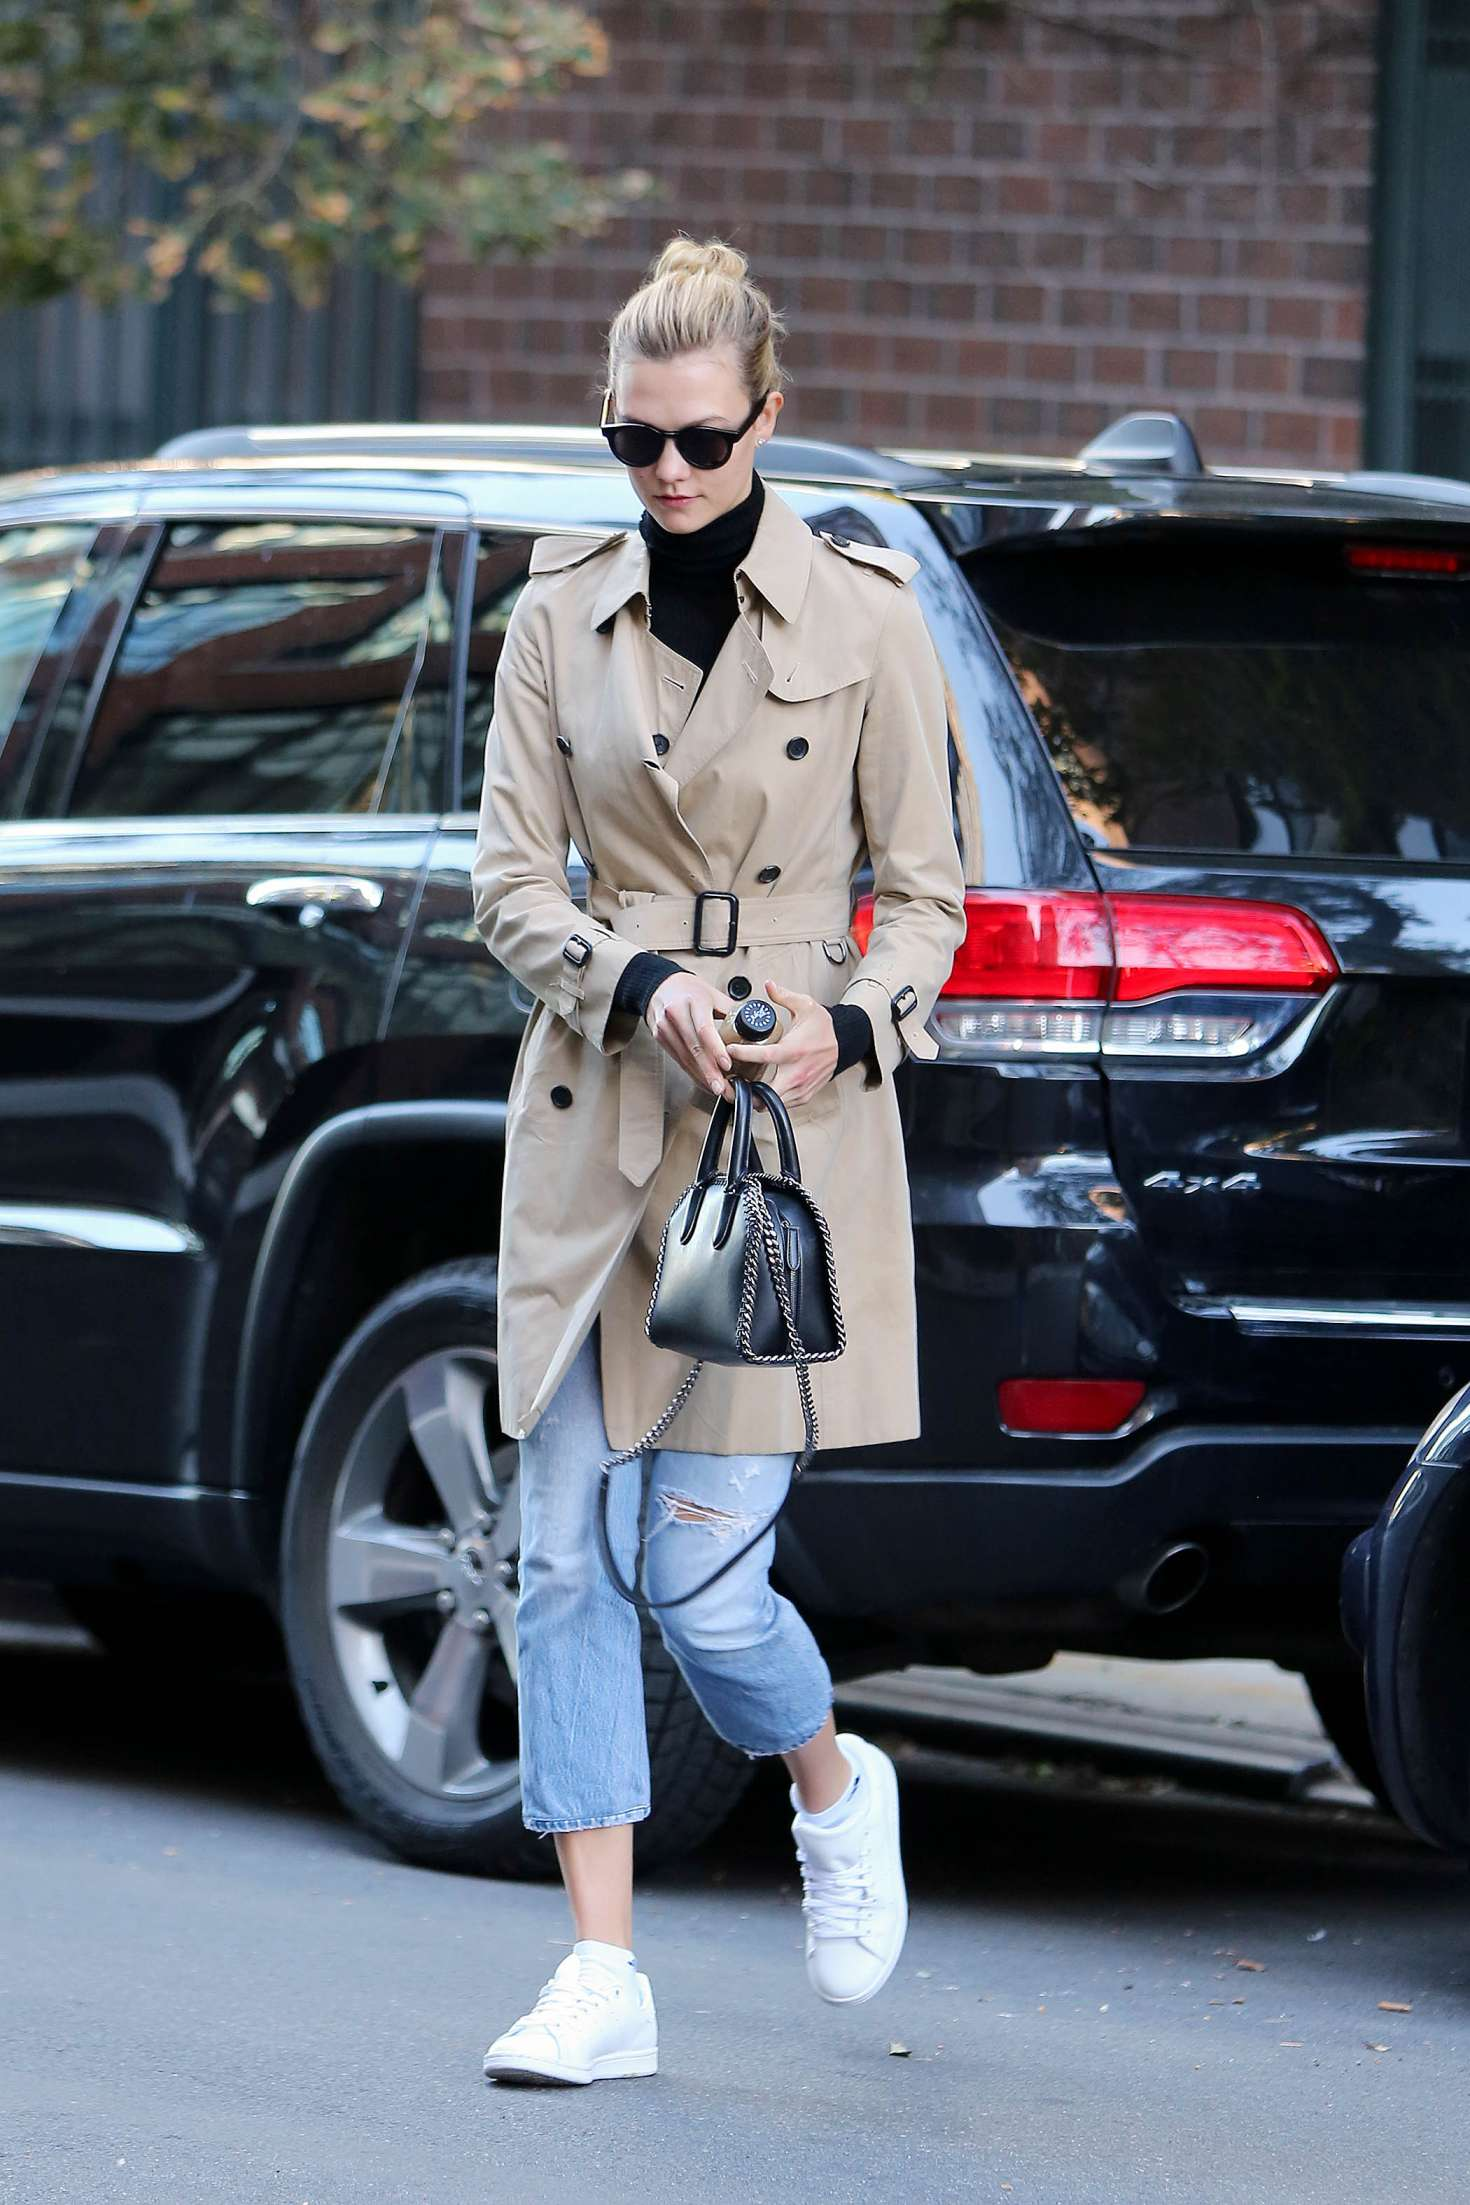 Karlie Kloss 2016 : Karlie Kloss in Jeans and Coat -11